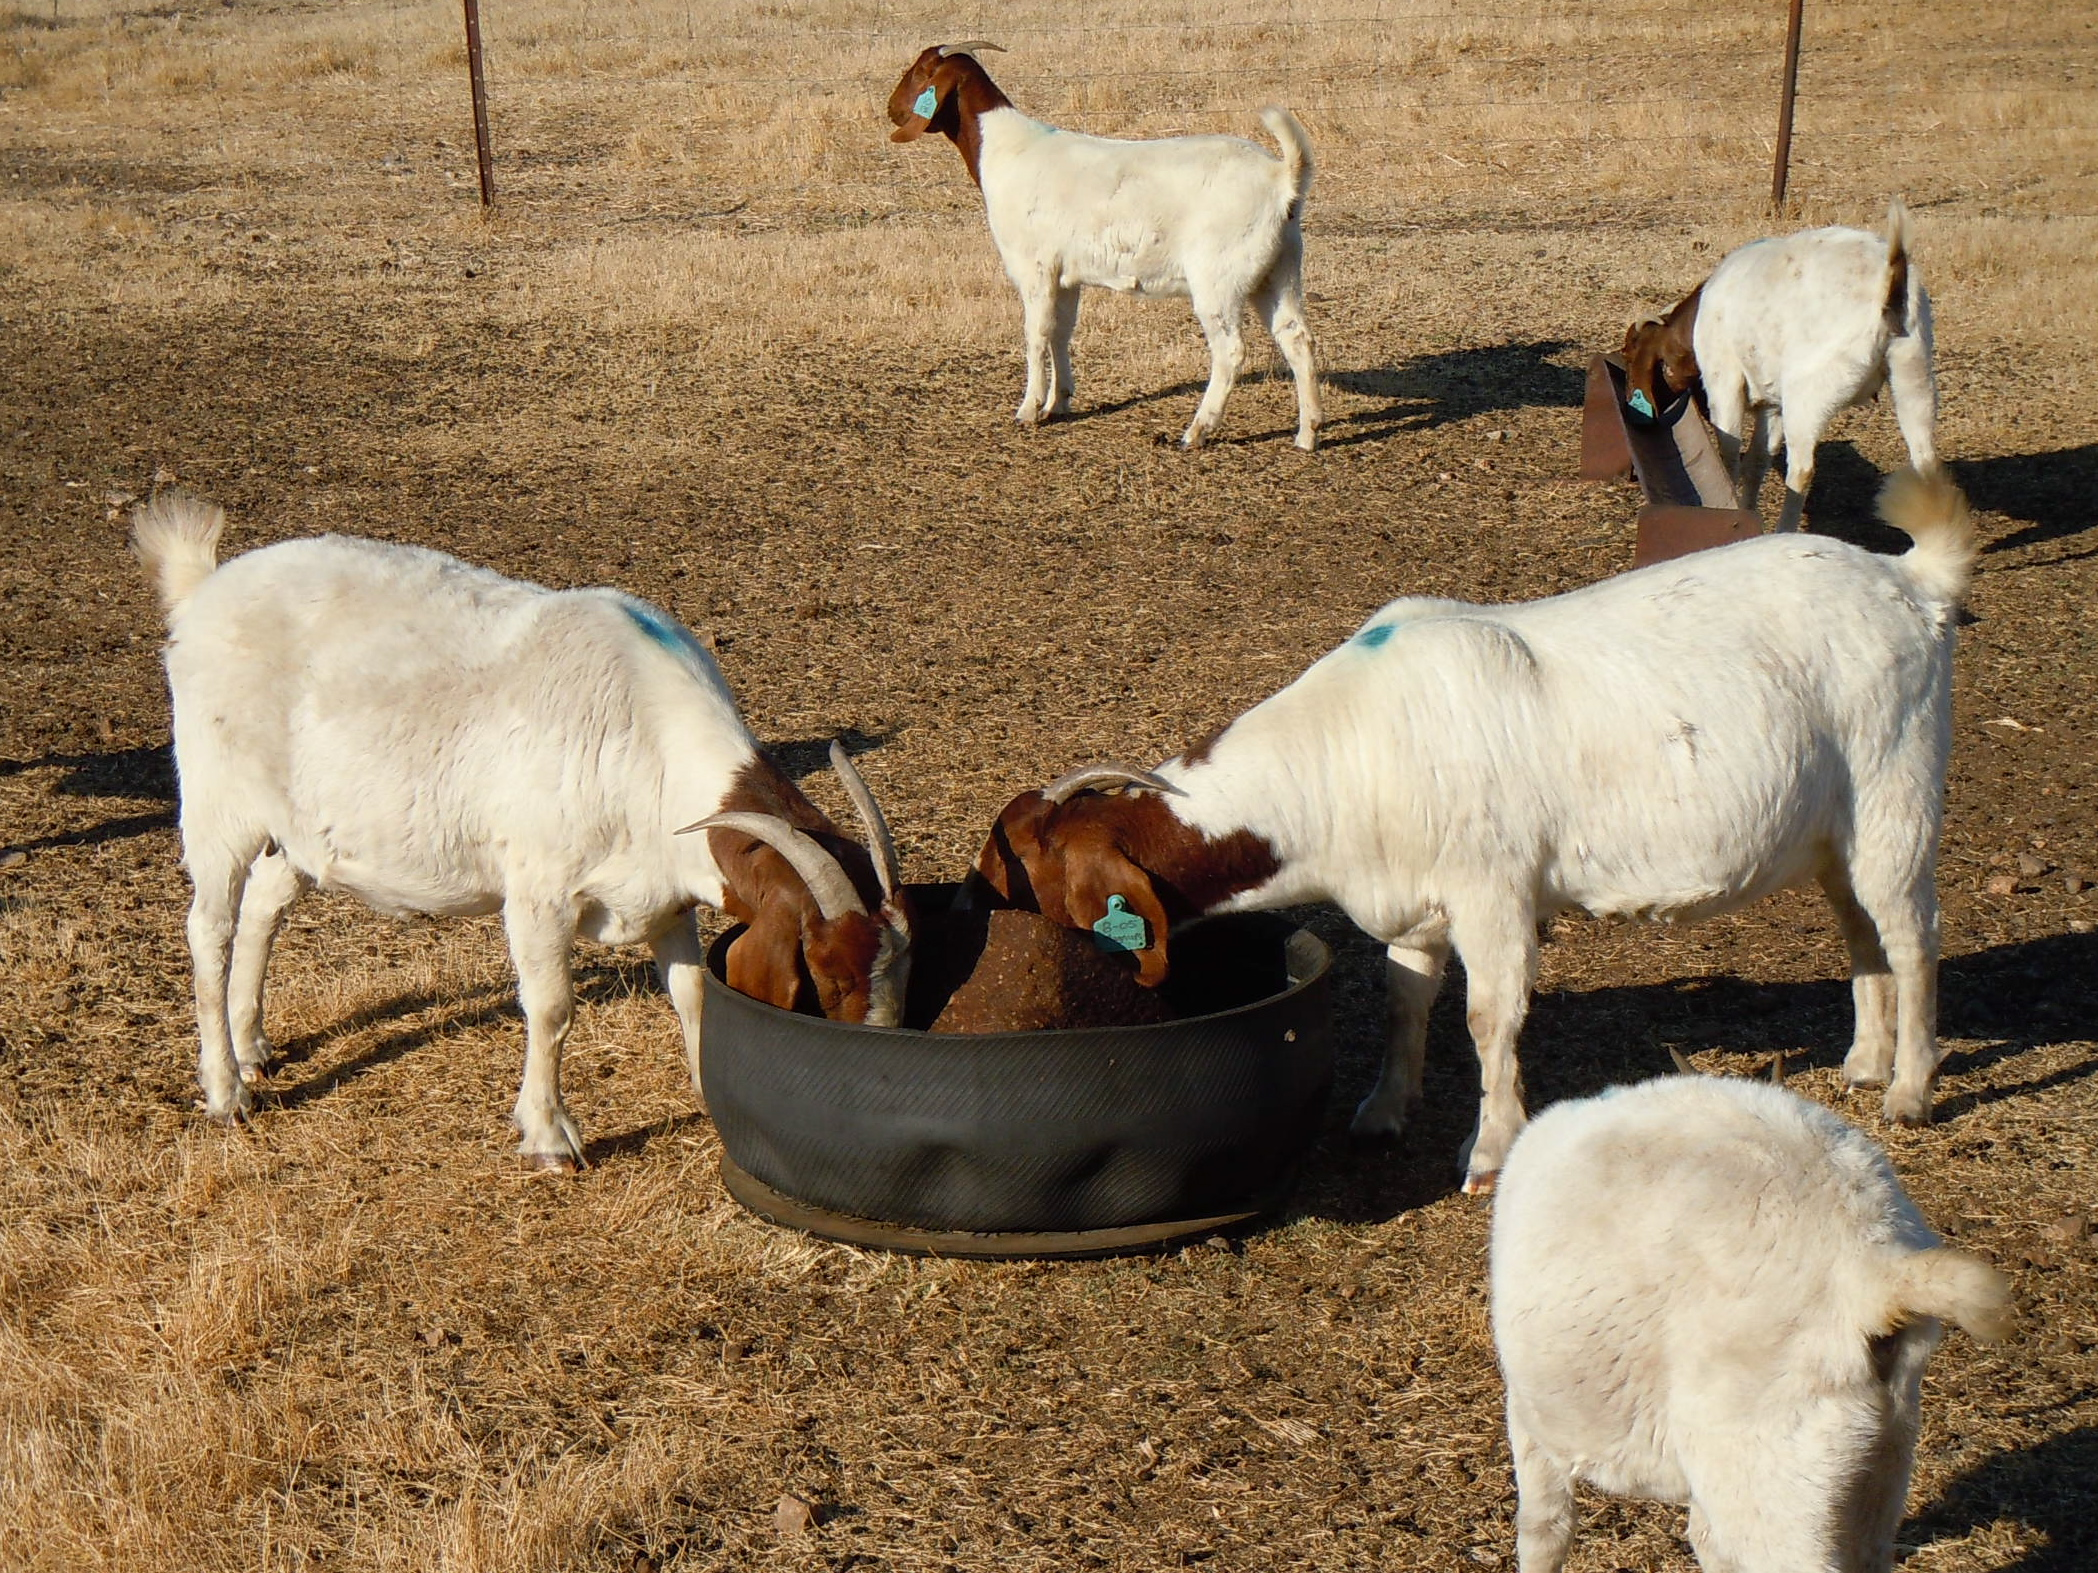 pregnant goats eating in pen